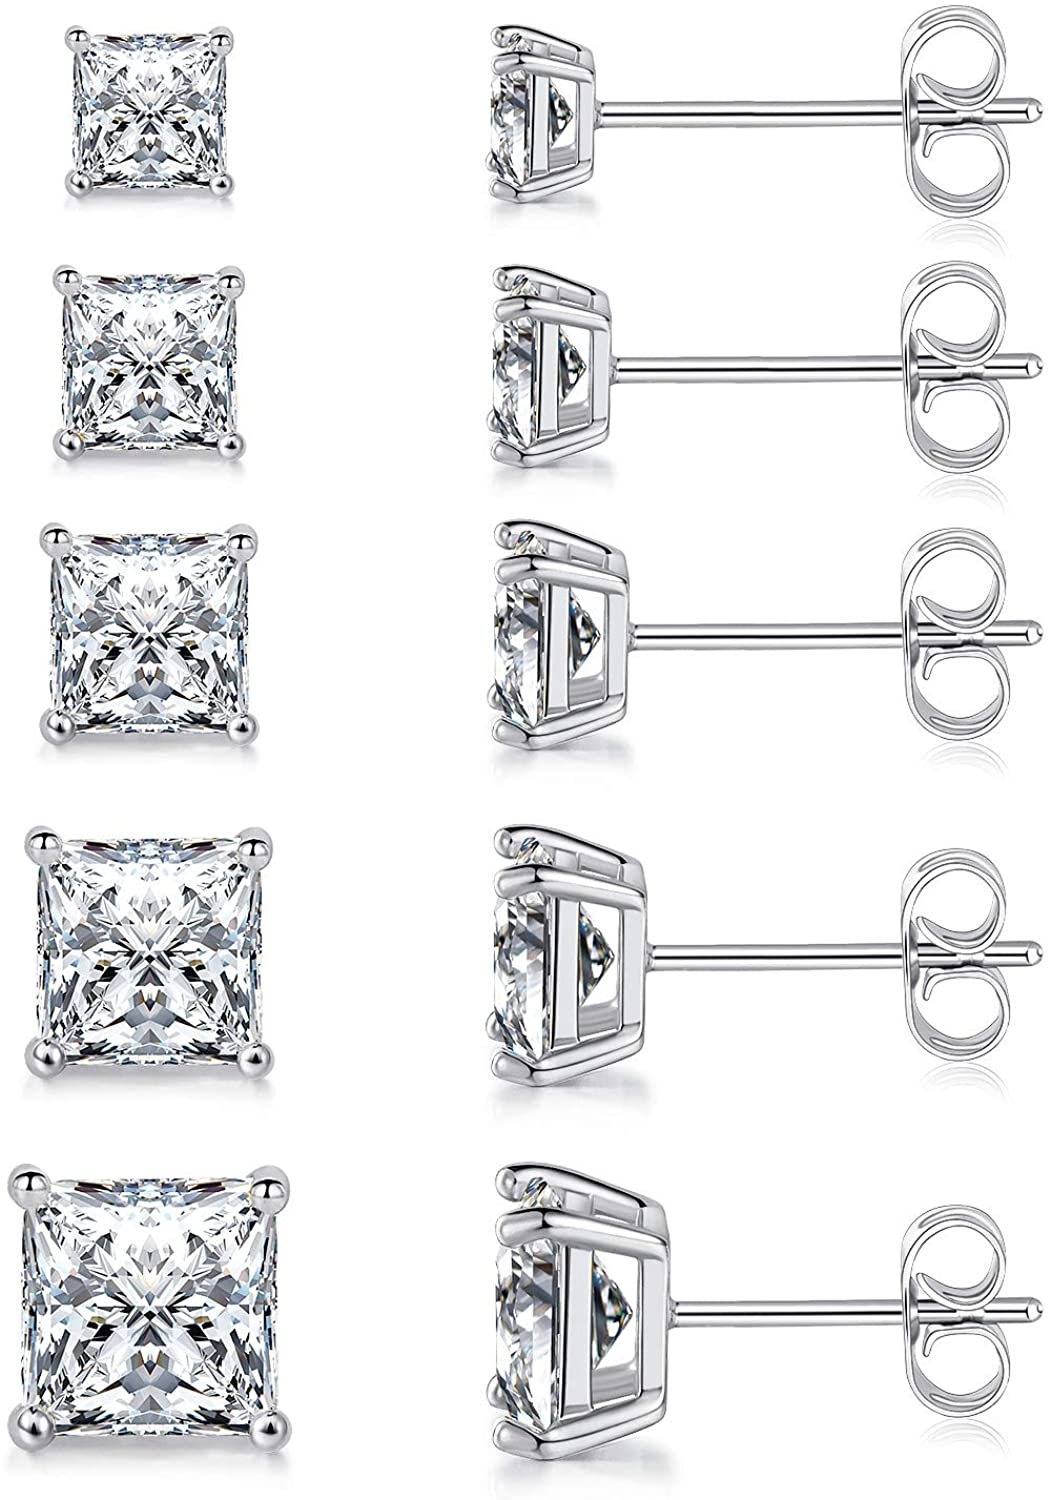 MDFUN 18K White Gold Plated Princess Cut Clear Cubic Zirconia Stud Earring Pack of 5 Pairs: Jewelry